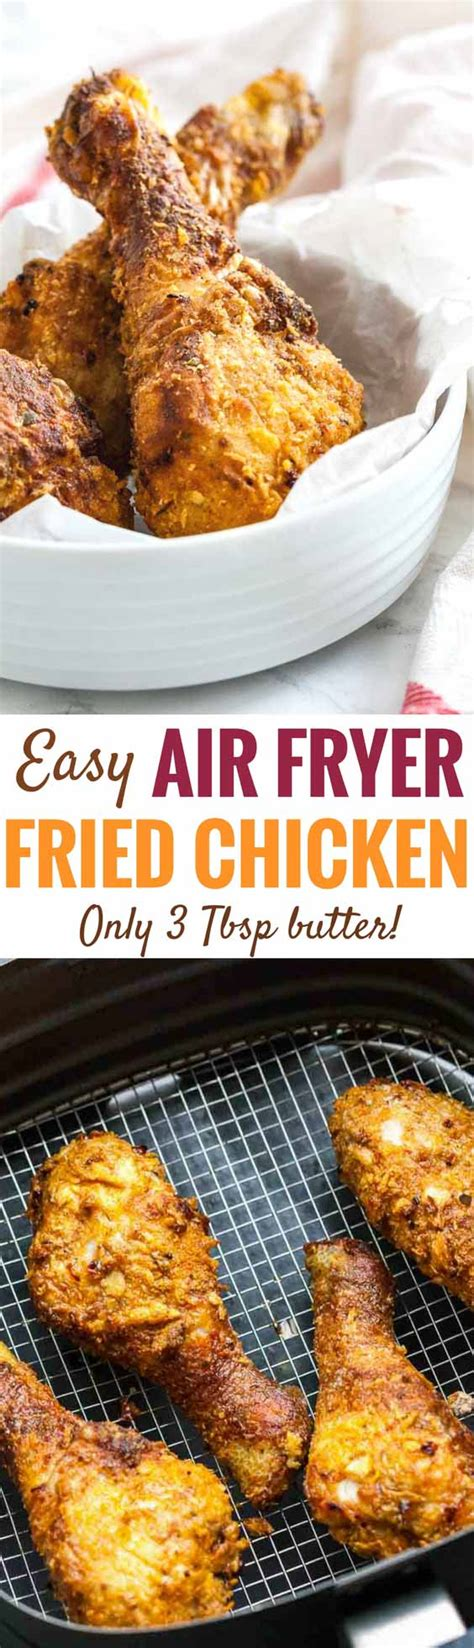 airfryer fryer chicken air drumsticks fried recipes easy recipe butter juicy crispy really oven tbsp frier philips fry flavor cooking